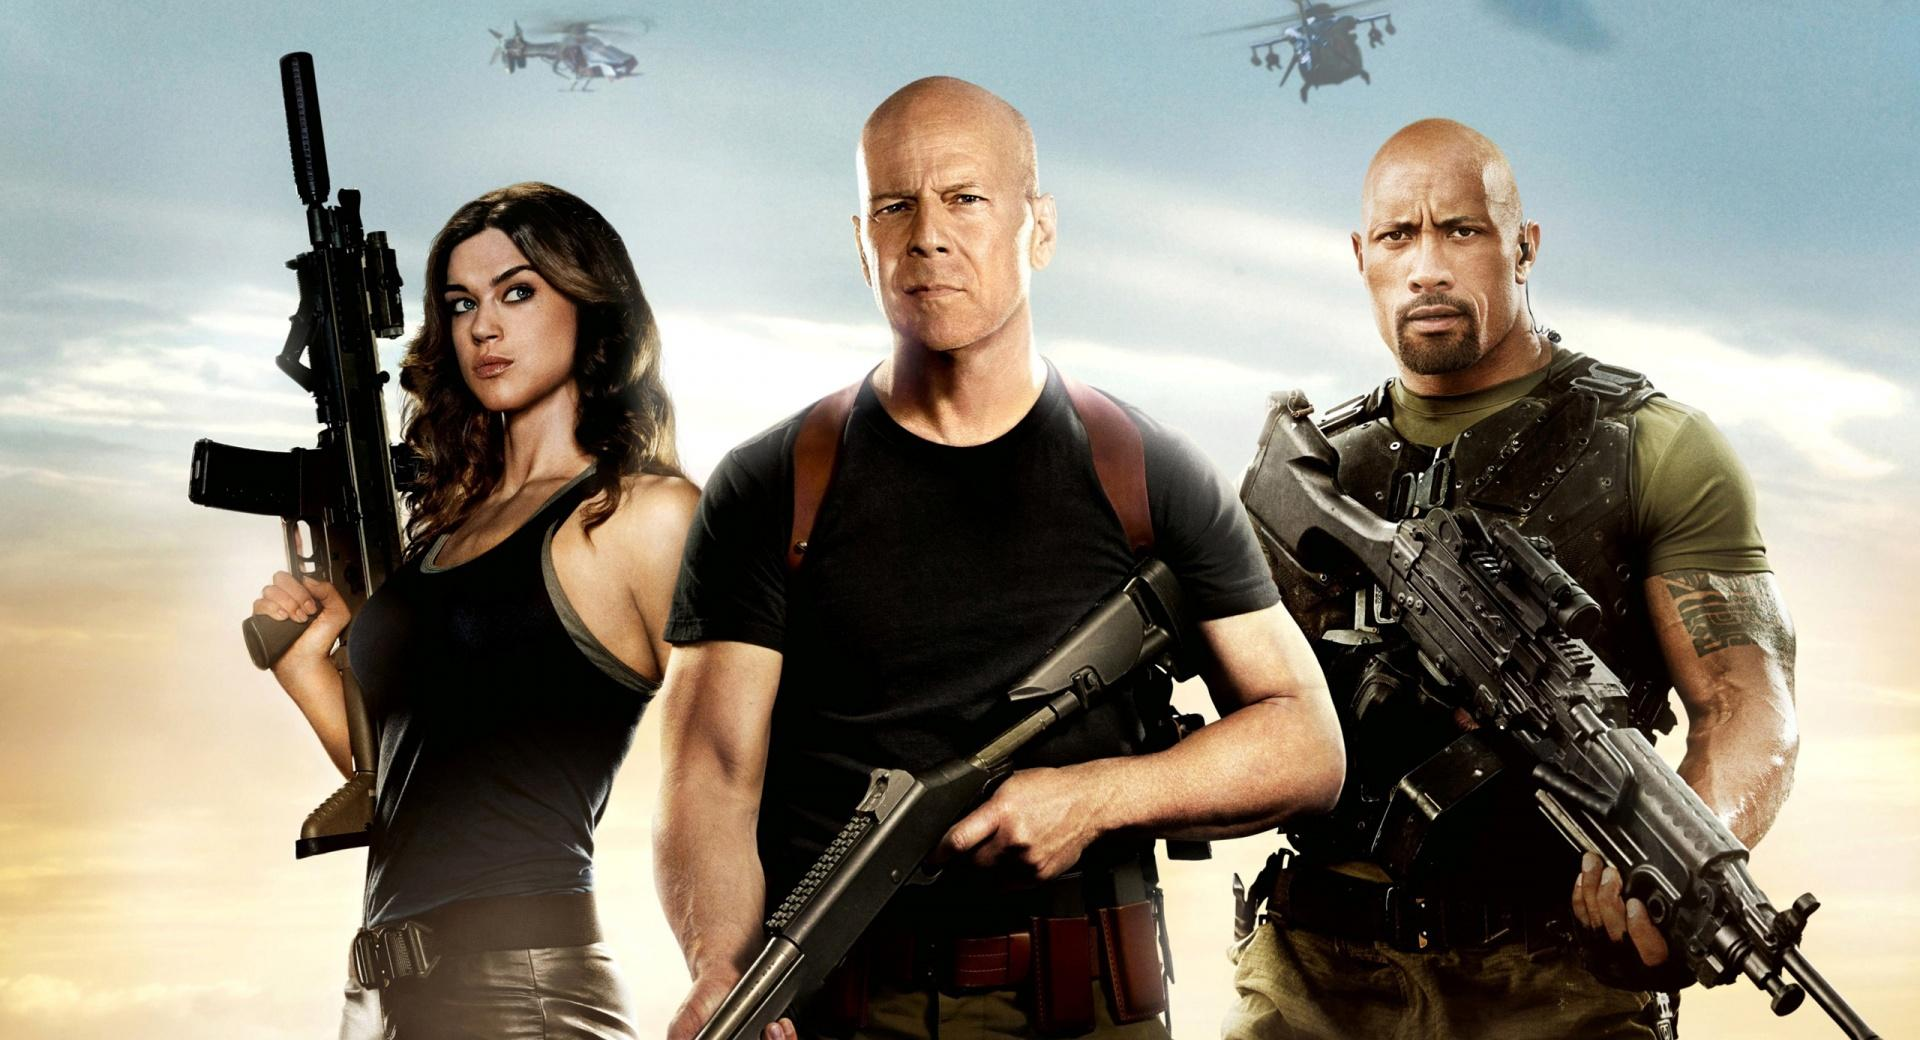 G.I. Joe 2 (2013) wallpapers HD quality